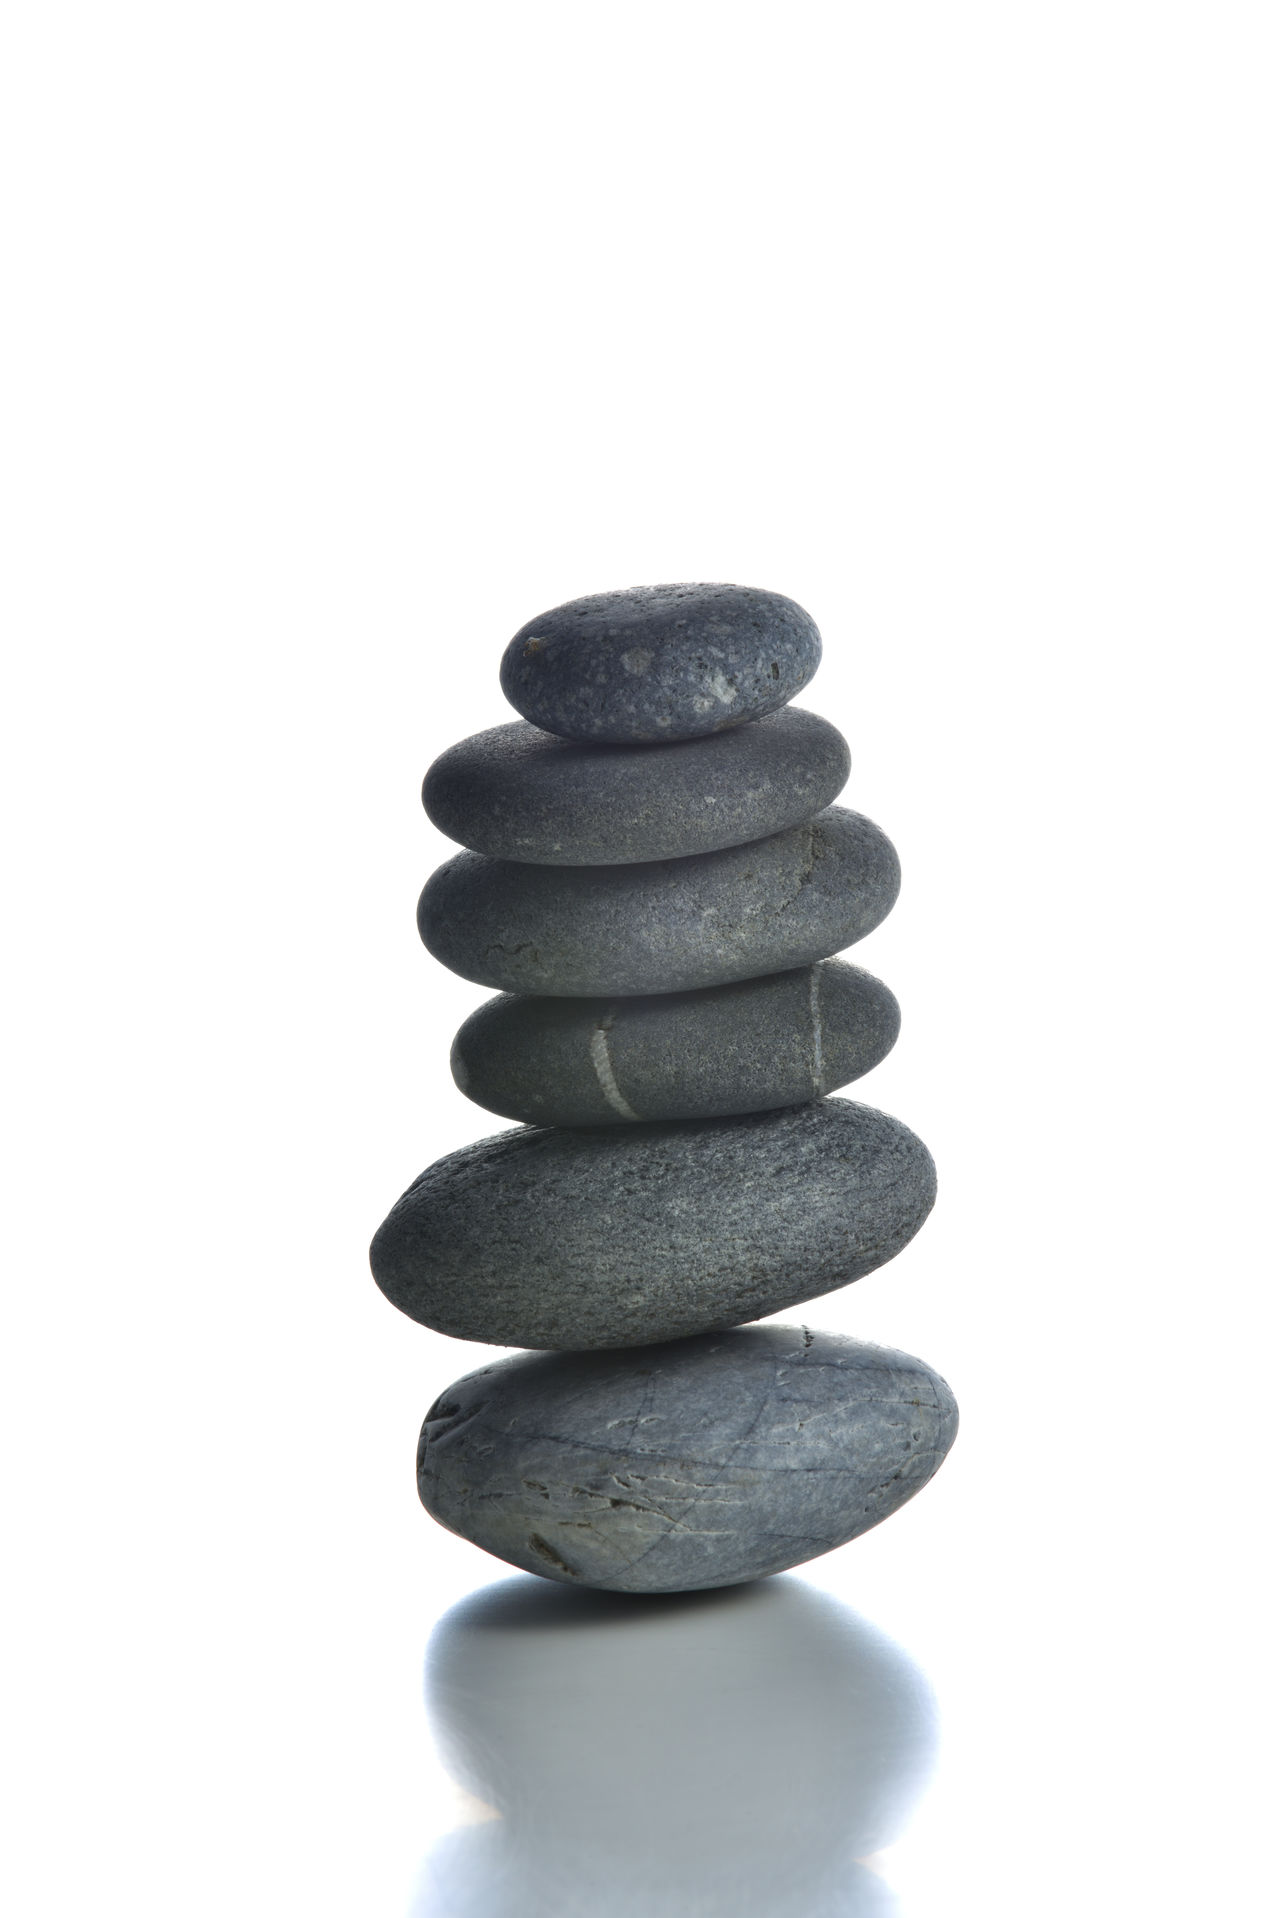 AIMS Balance Close-up Effort Explore Force Help No People Other Partner Pebble Reached Relationship Rock - Object Sky Stack Stand Up Standard Pole Studio Shot Taiwan Team Up White Background